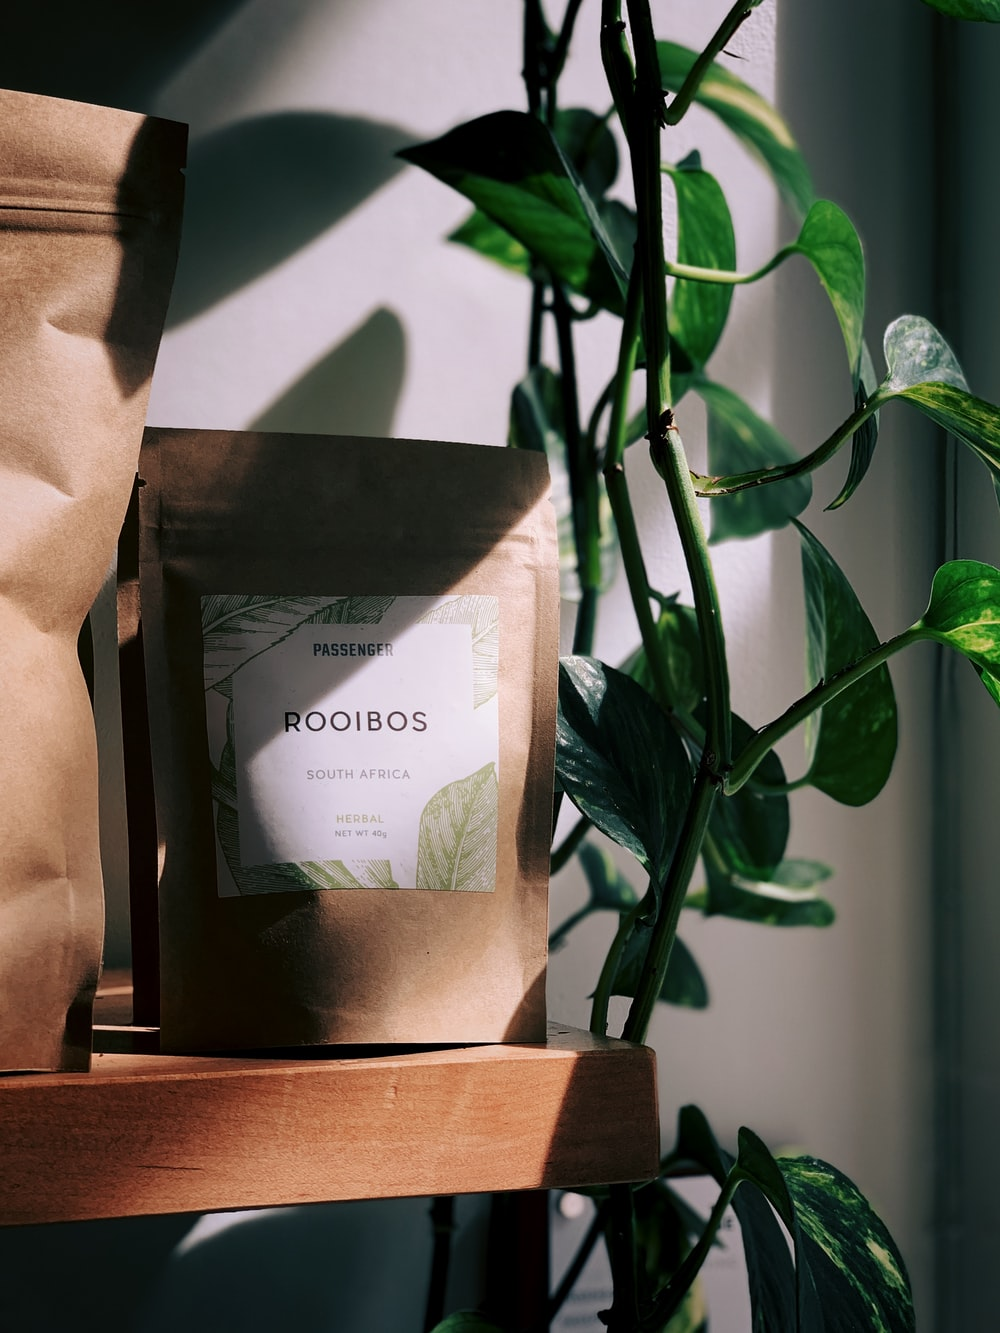 Rooibos pack beside green leafed plant